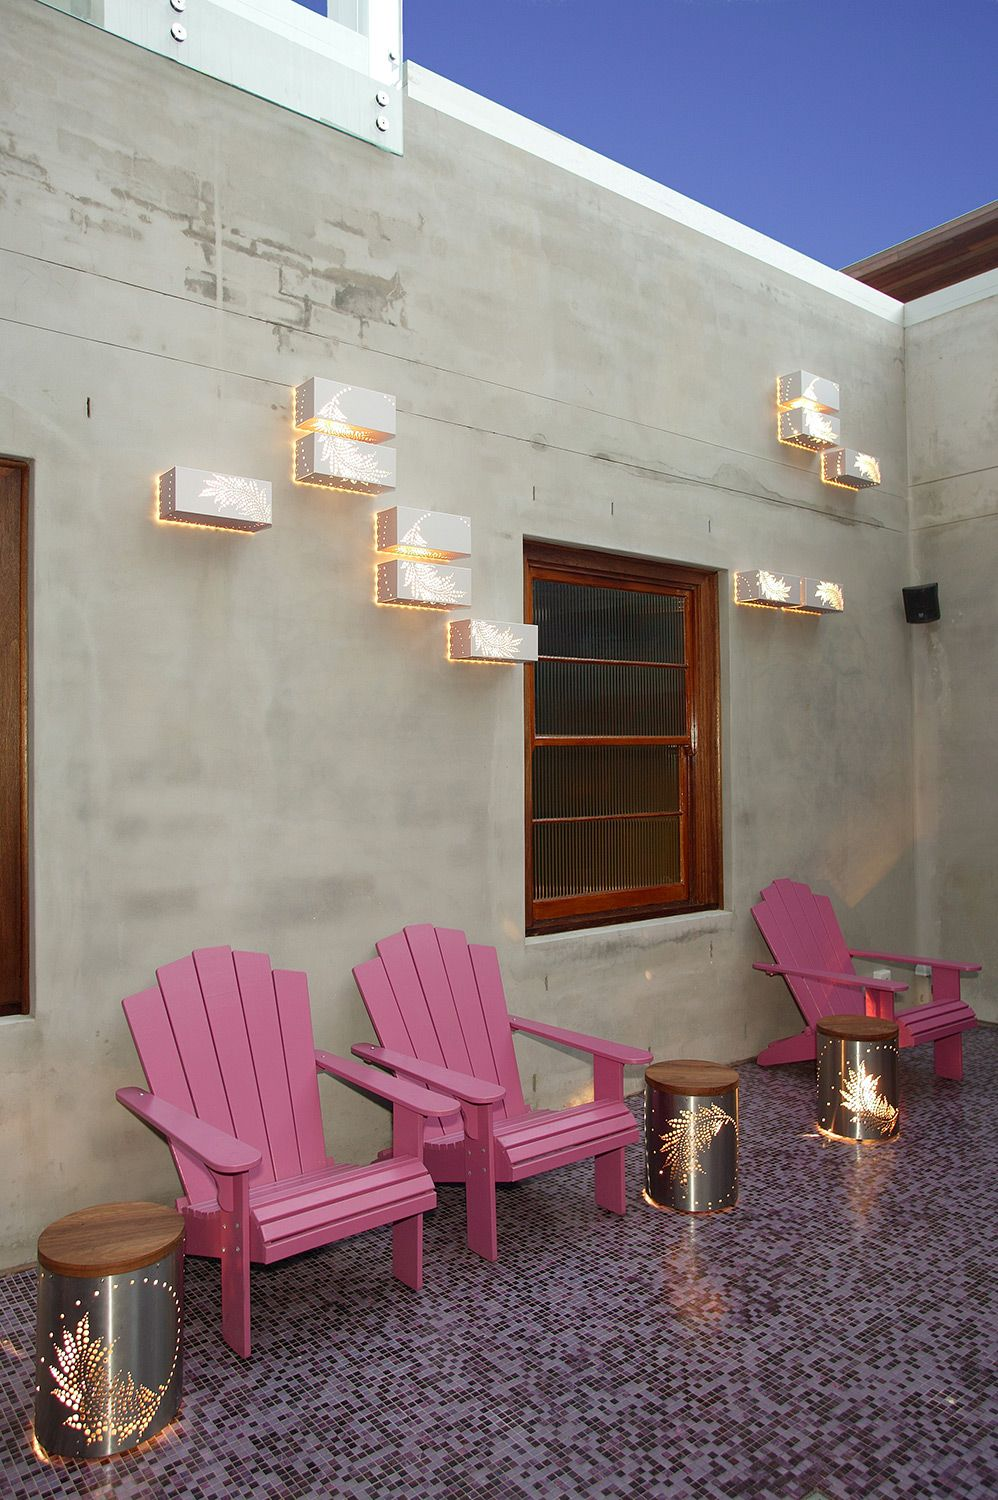 The Eastern Hotel, Sydney. Outdoor decor, Outdoor